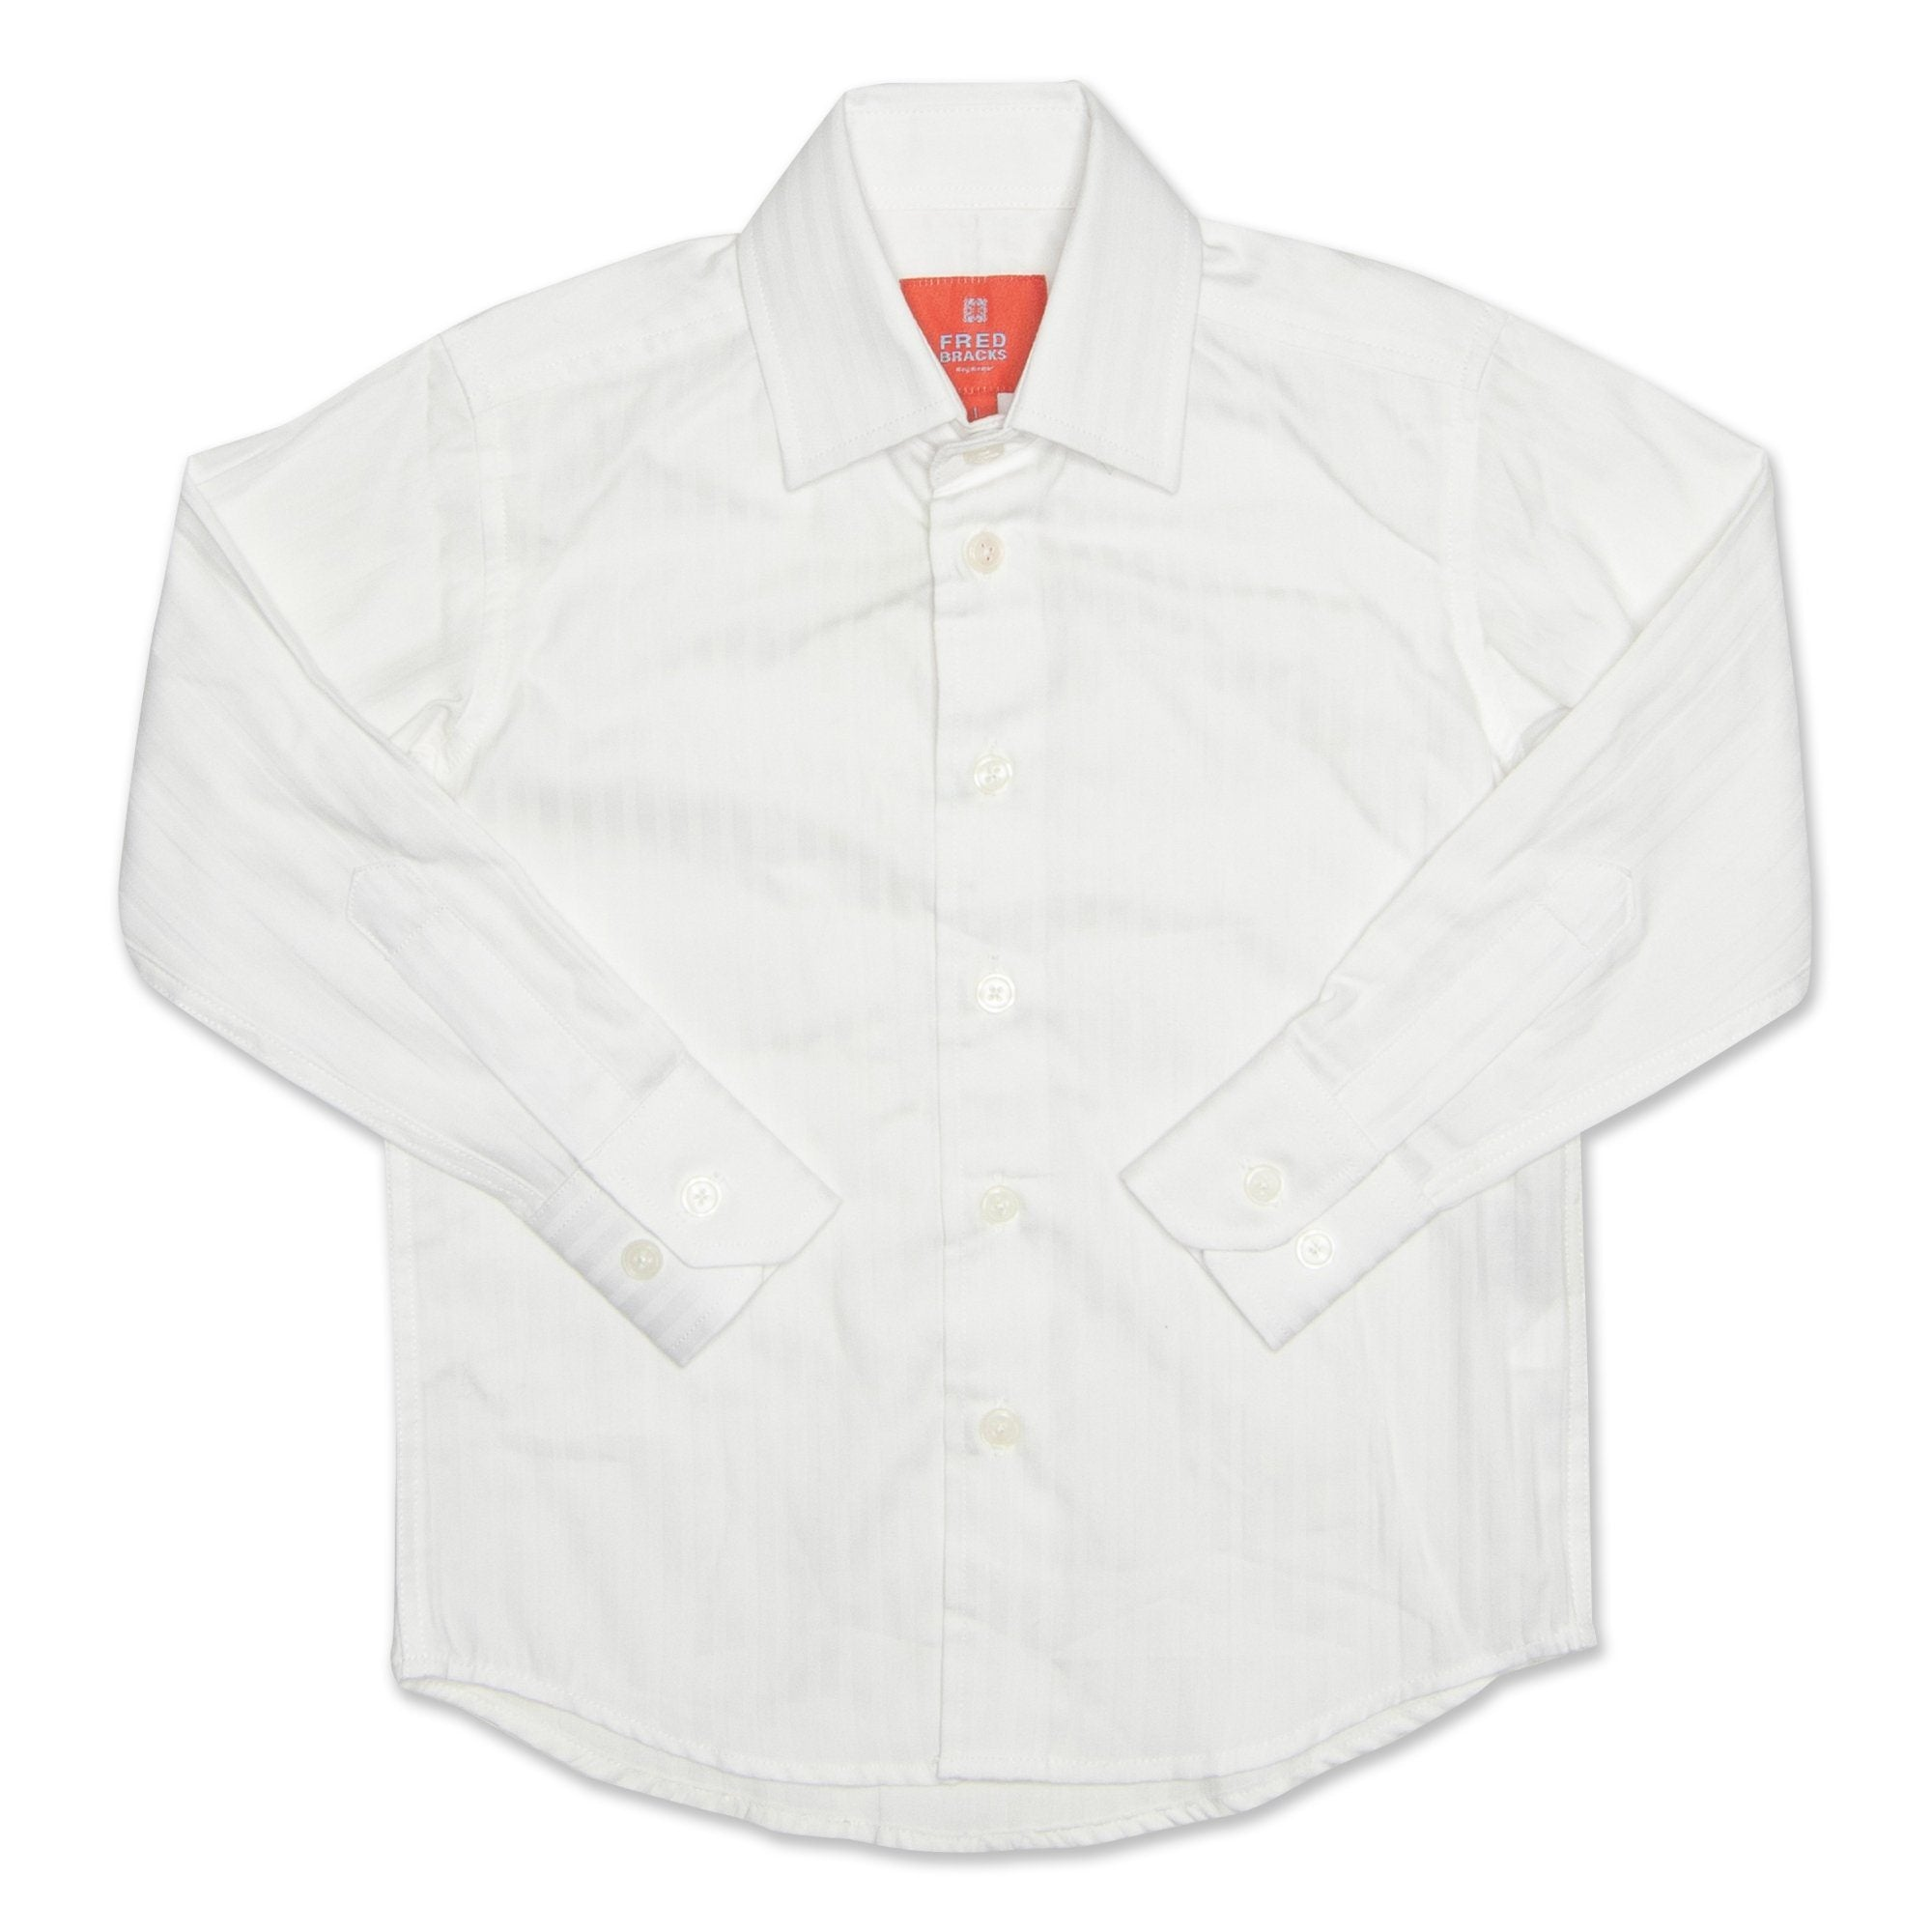 Fred Bracks Long Sleeve Boy's Shirt - White Workwear Fred Bracks